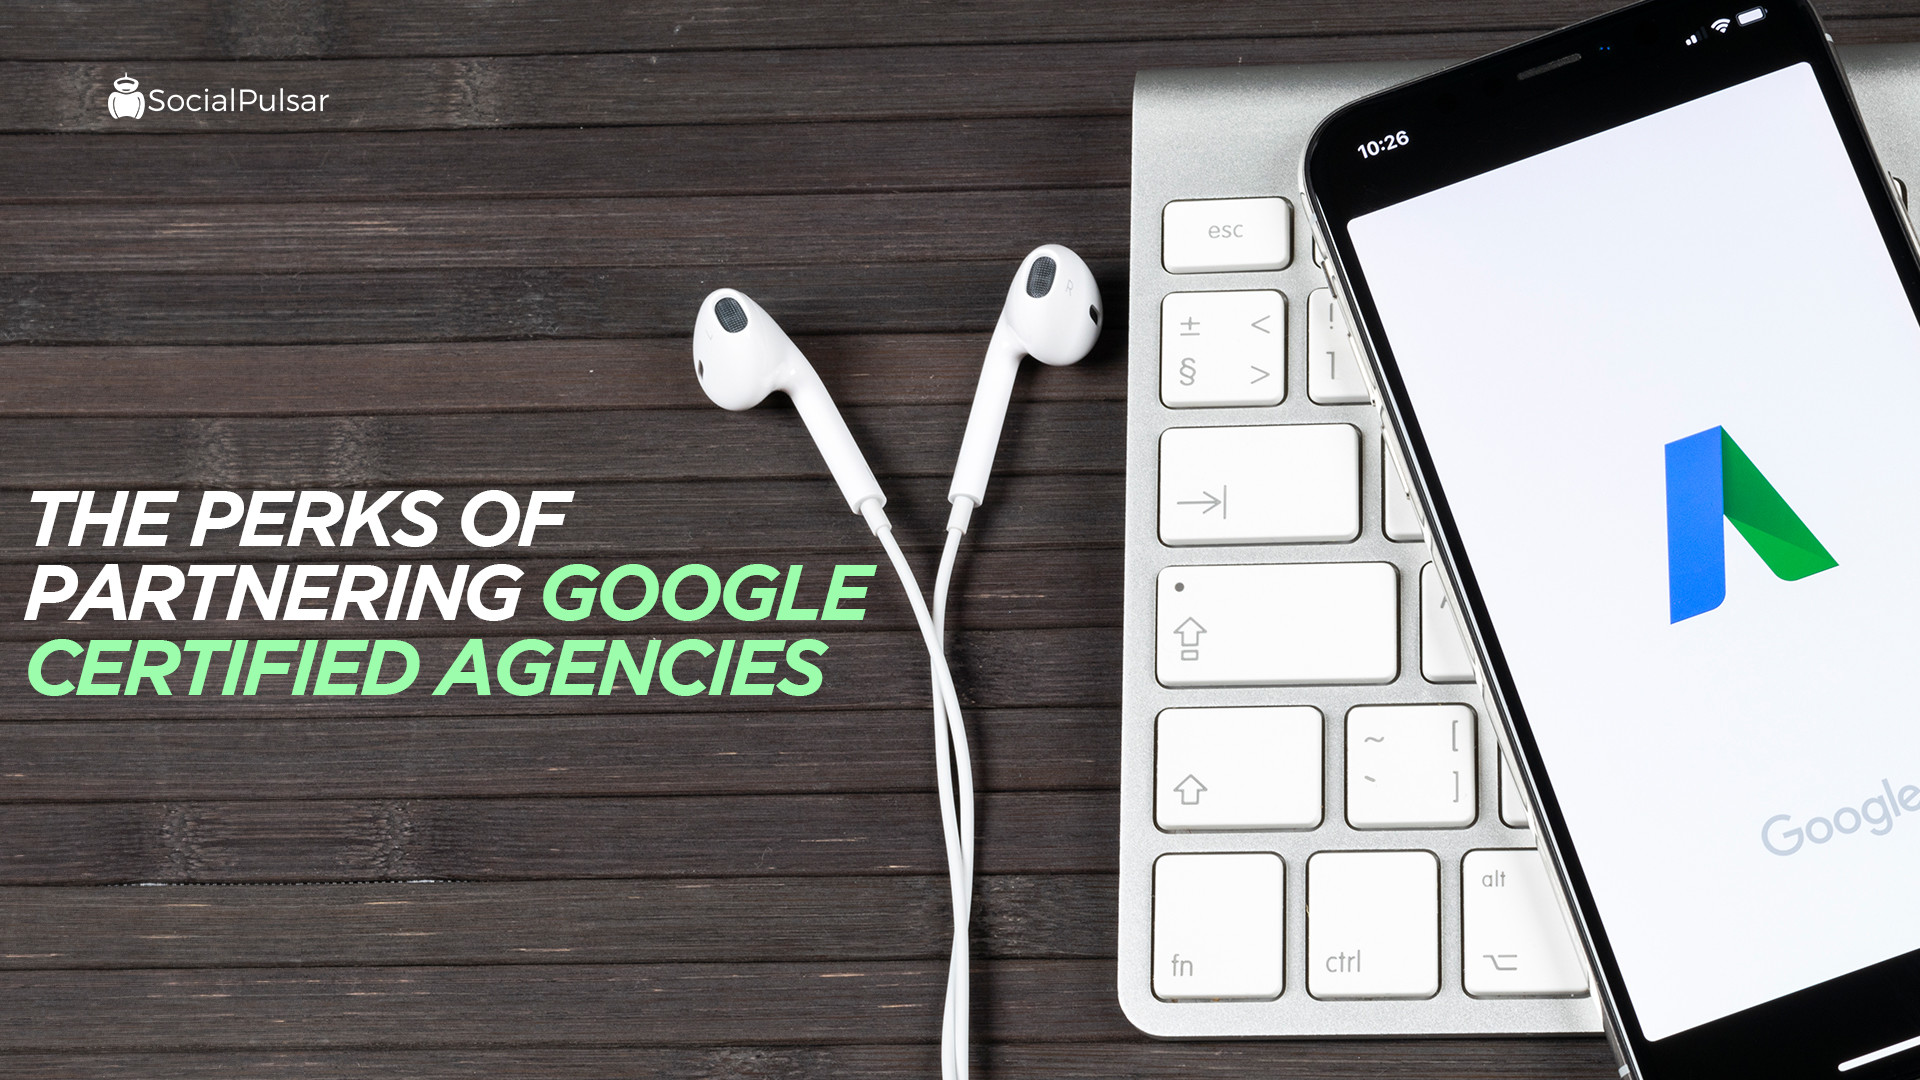 The Perks Of Partnering Google Certified Agencies